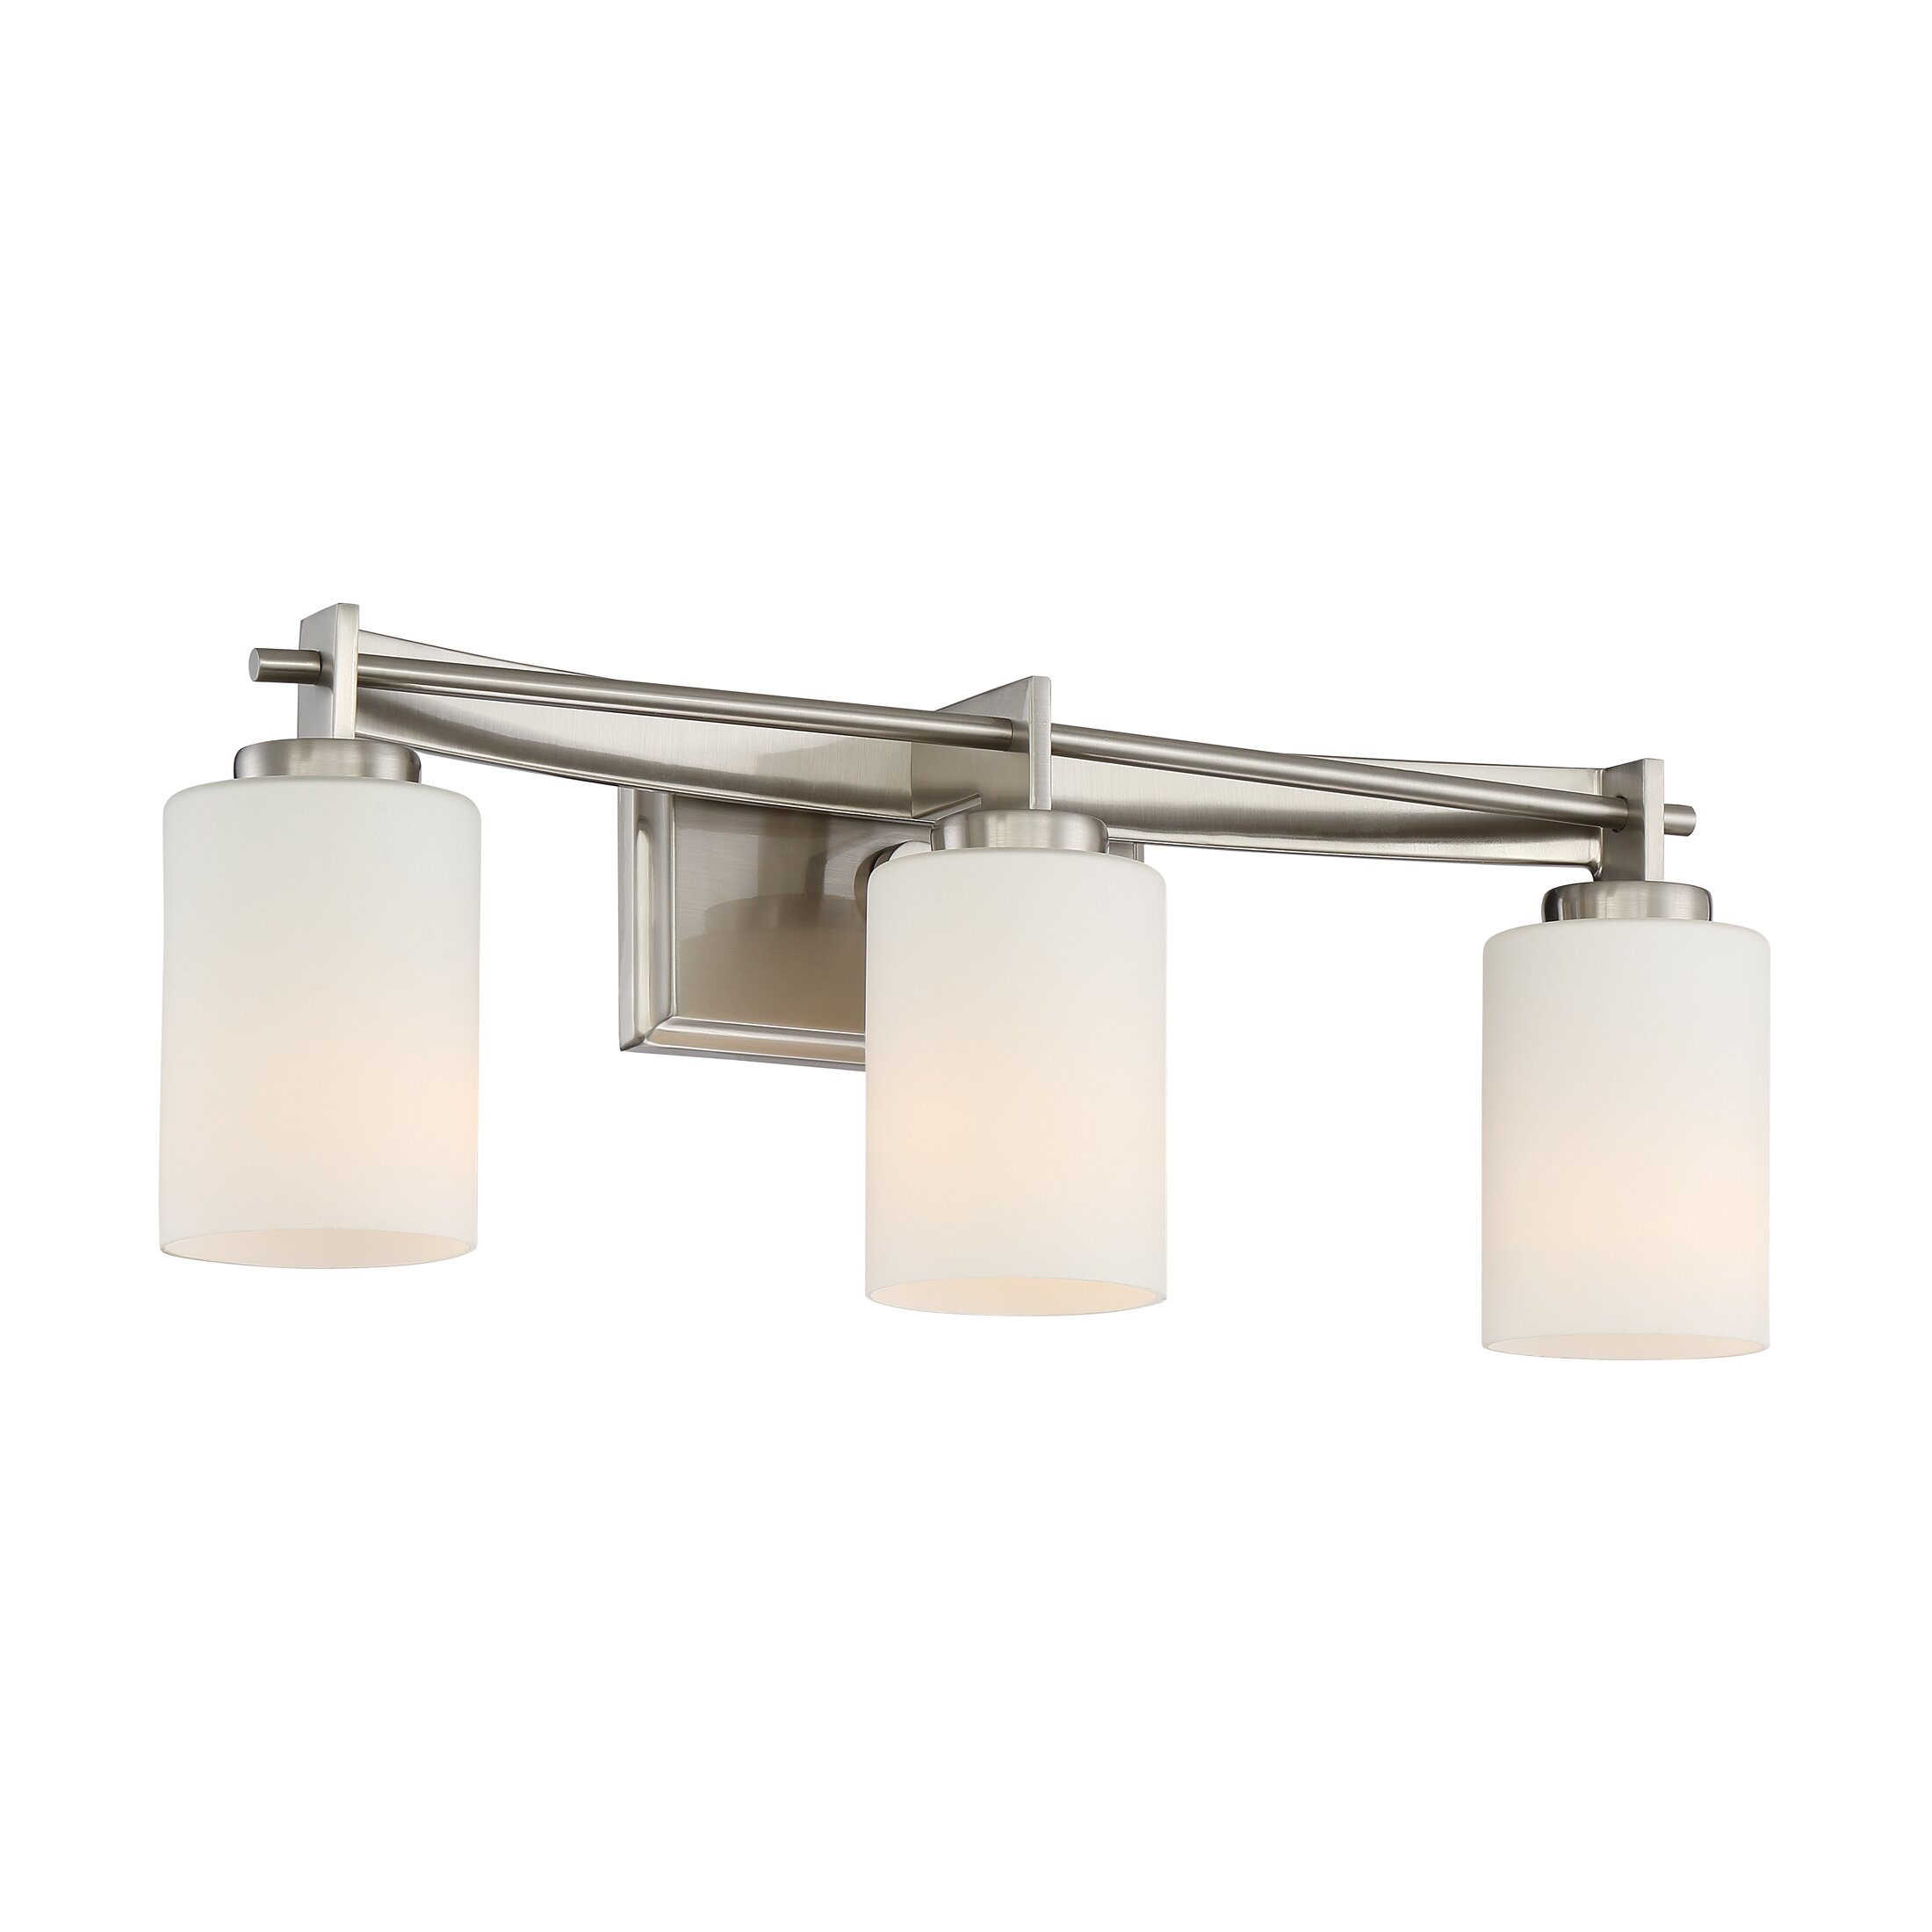 Quoizel Taylor 3 Light Bath Bar Wayfair